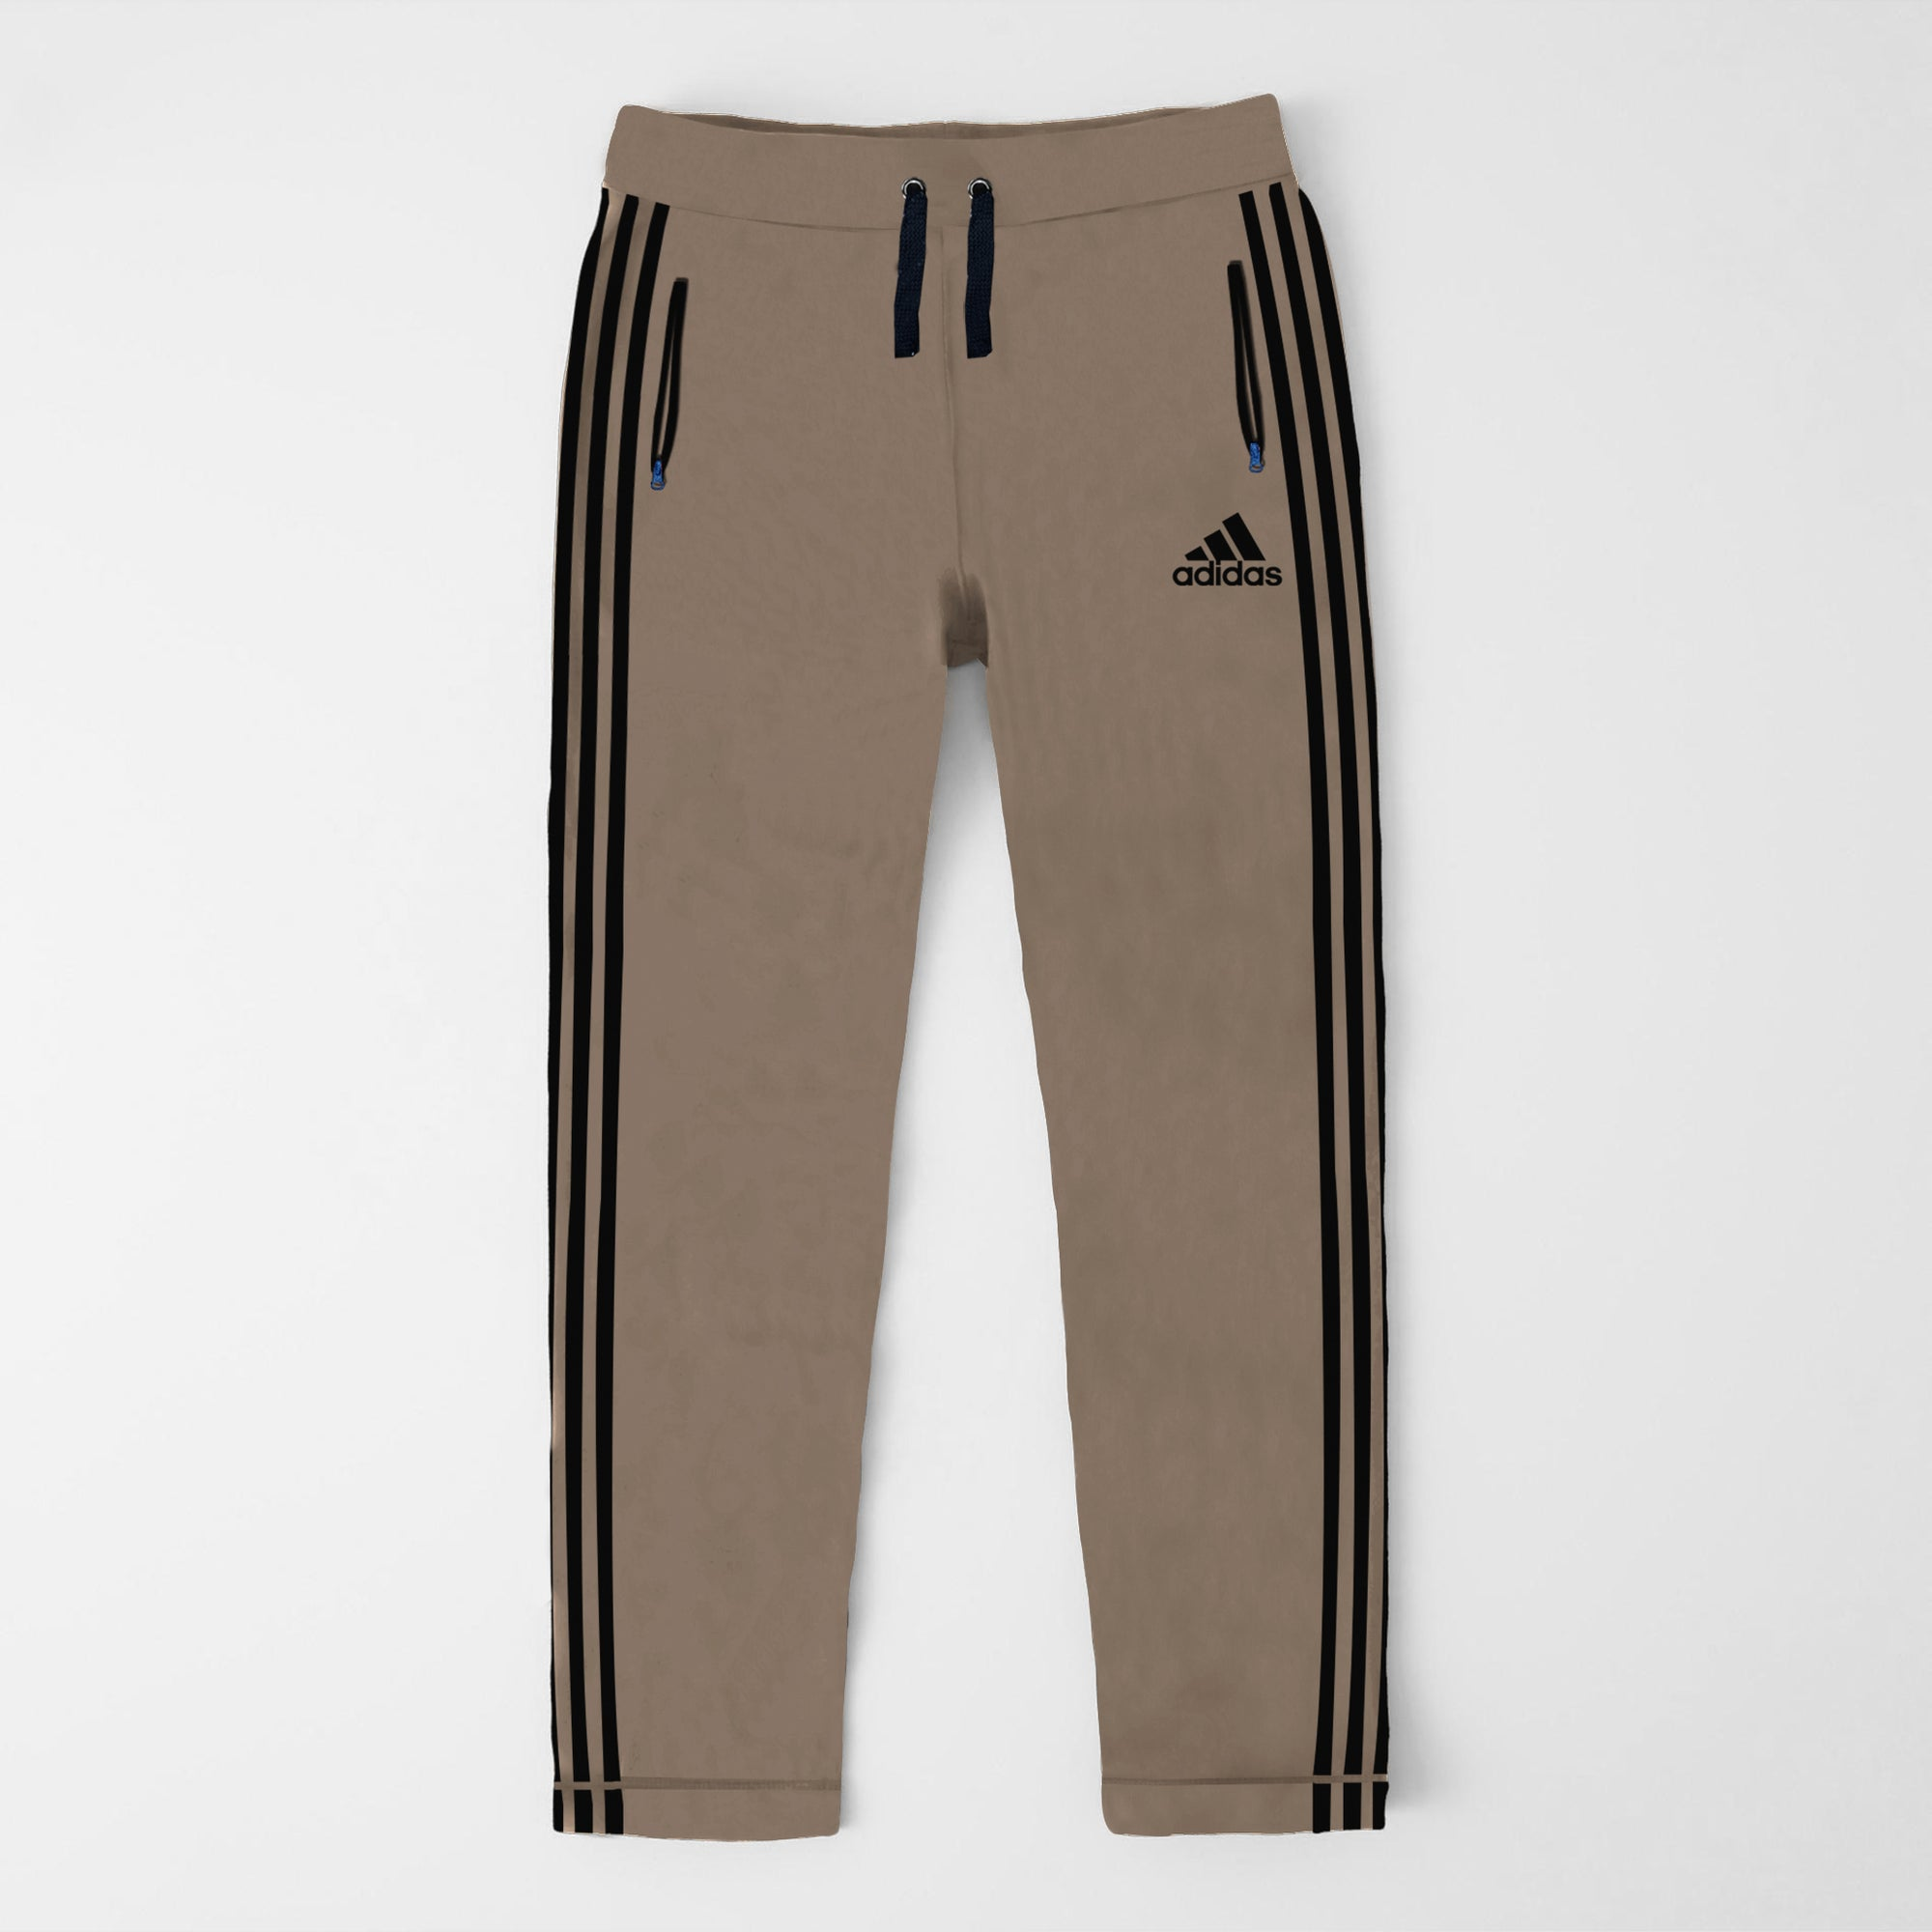 Adidas Single Jersey Regular Fit Trouser For Men-Brown With Black Stripes-SP462